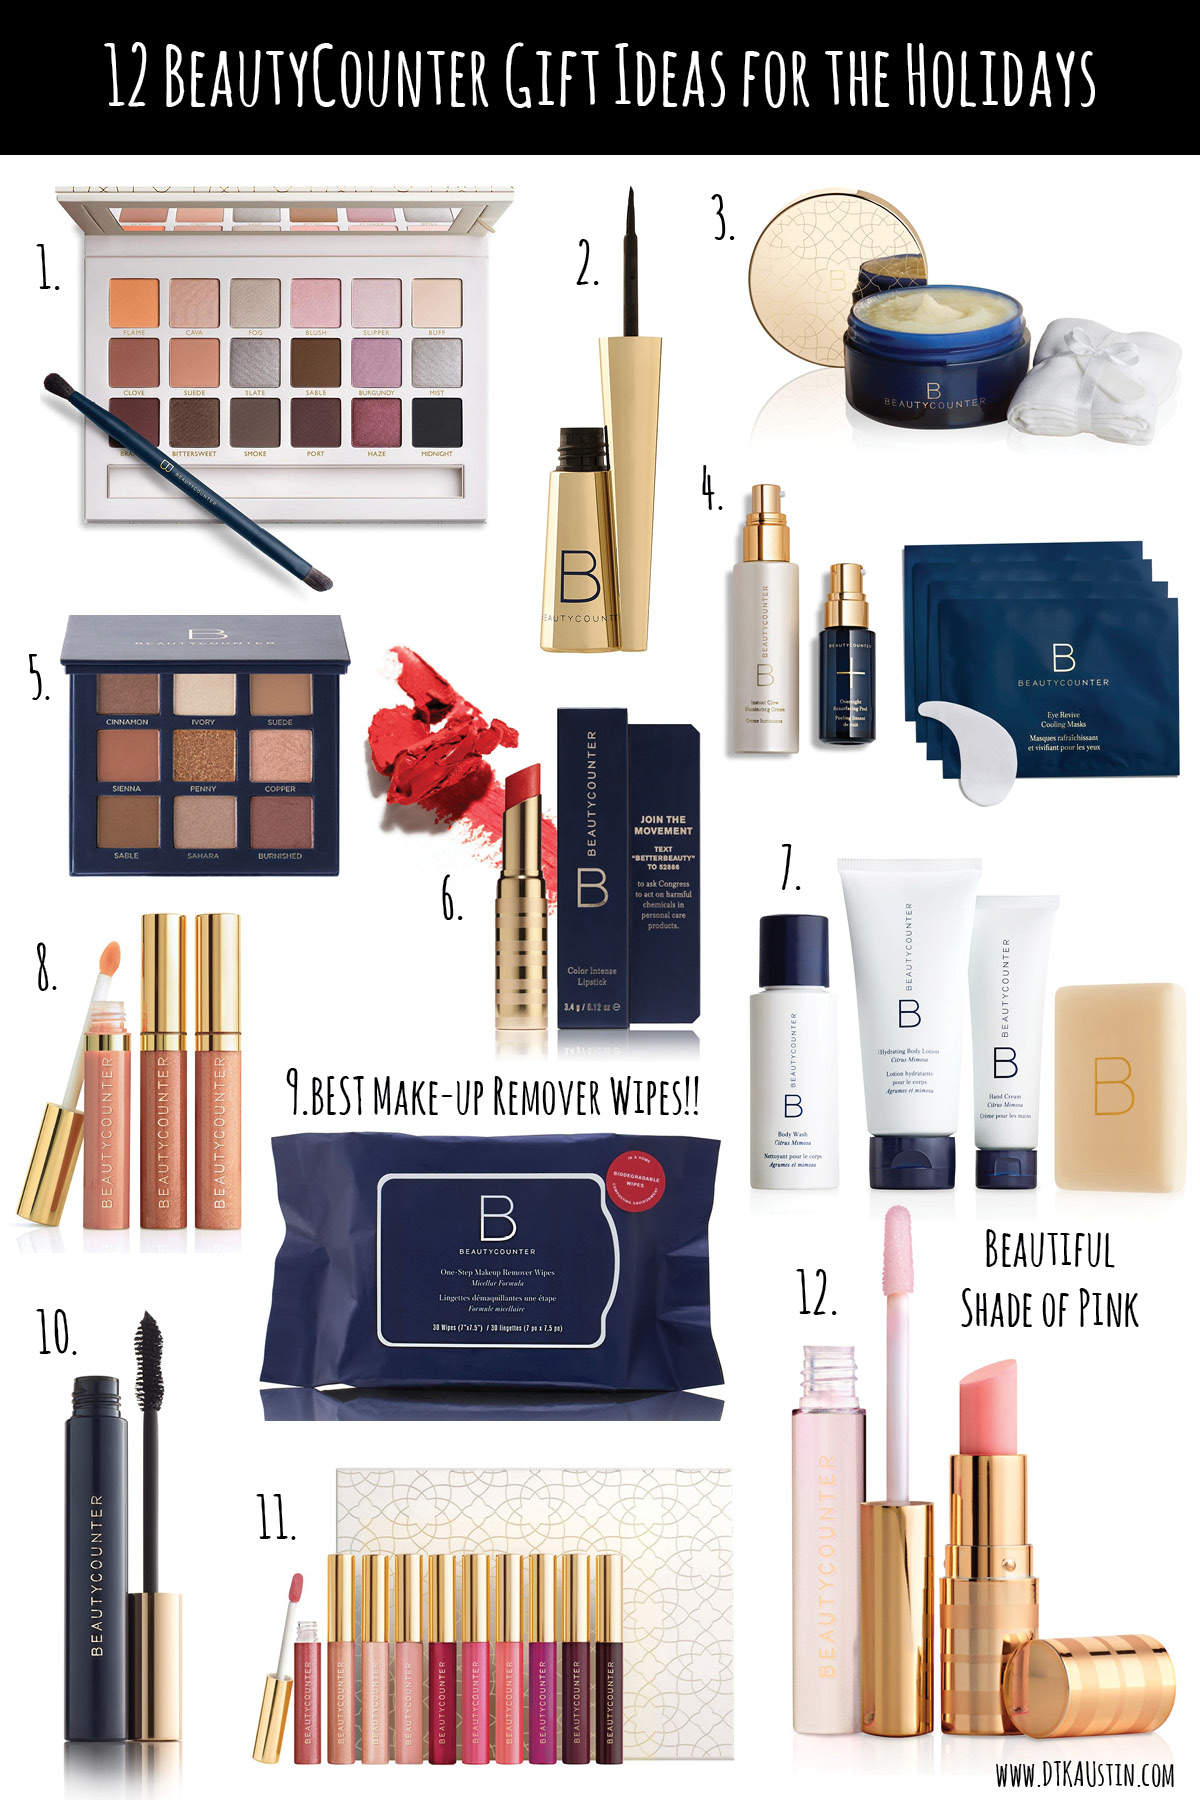 DTKAustin is sharing the best 12 BeautyCounter make-up & beauty Gift Ideas for the Holidays. | Gift Giving | Gift Guide | Clean Beauty | BeautyCounter | Safe Beauty | Gift Sets| Makeup Sets || #safebeauty #cleanbeauty #beautycounter #giftguide || Dressed to Kill